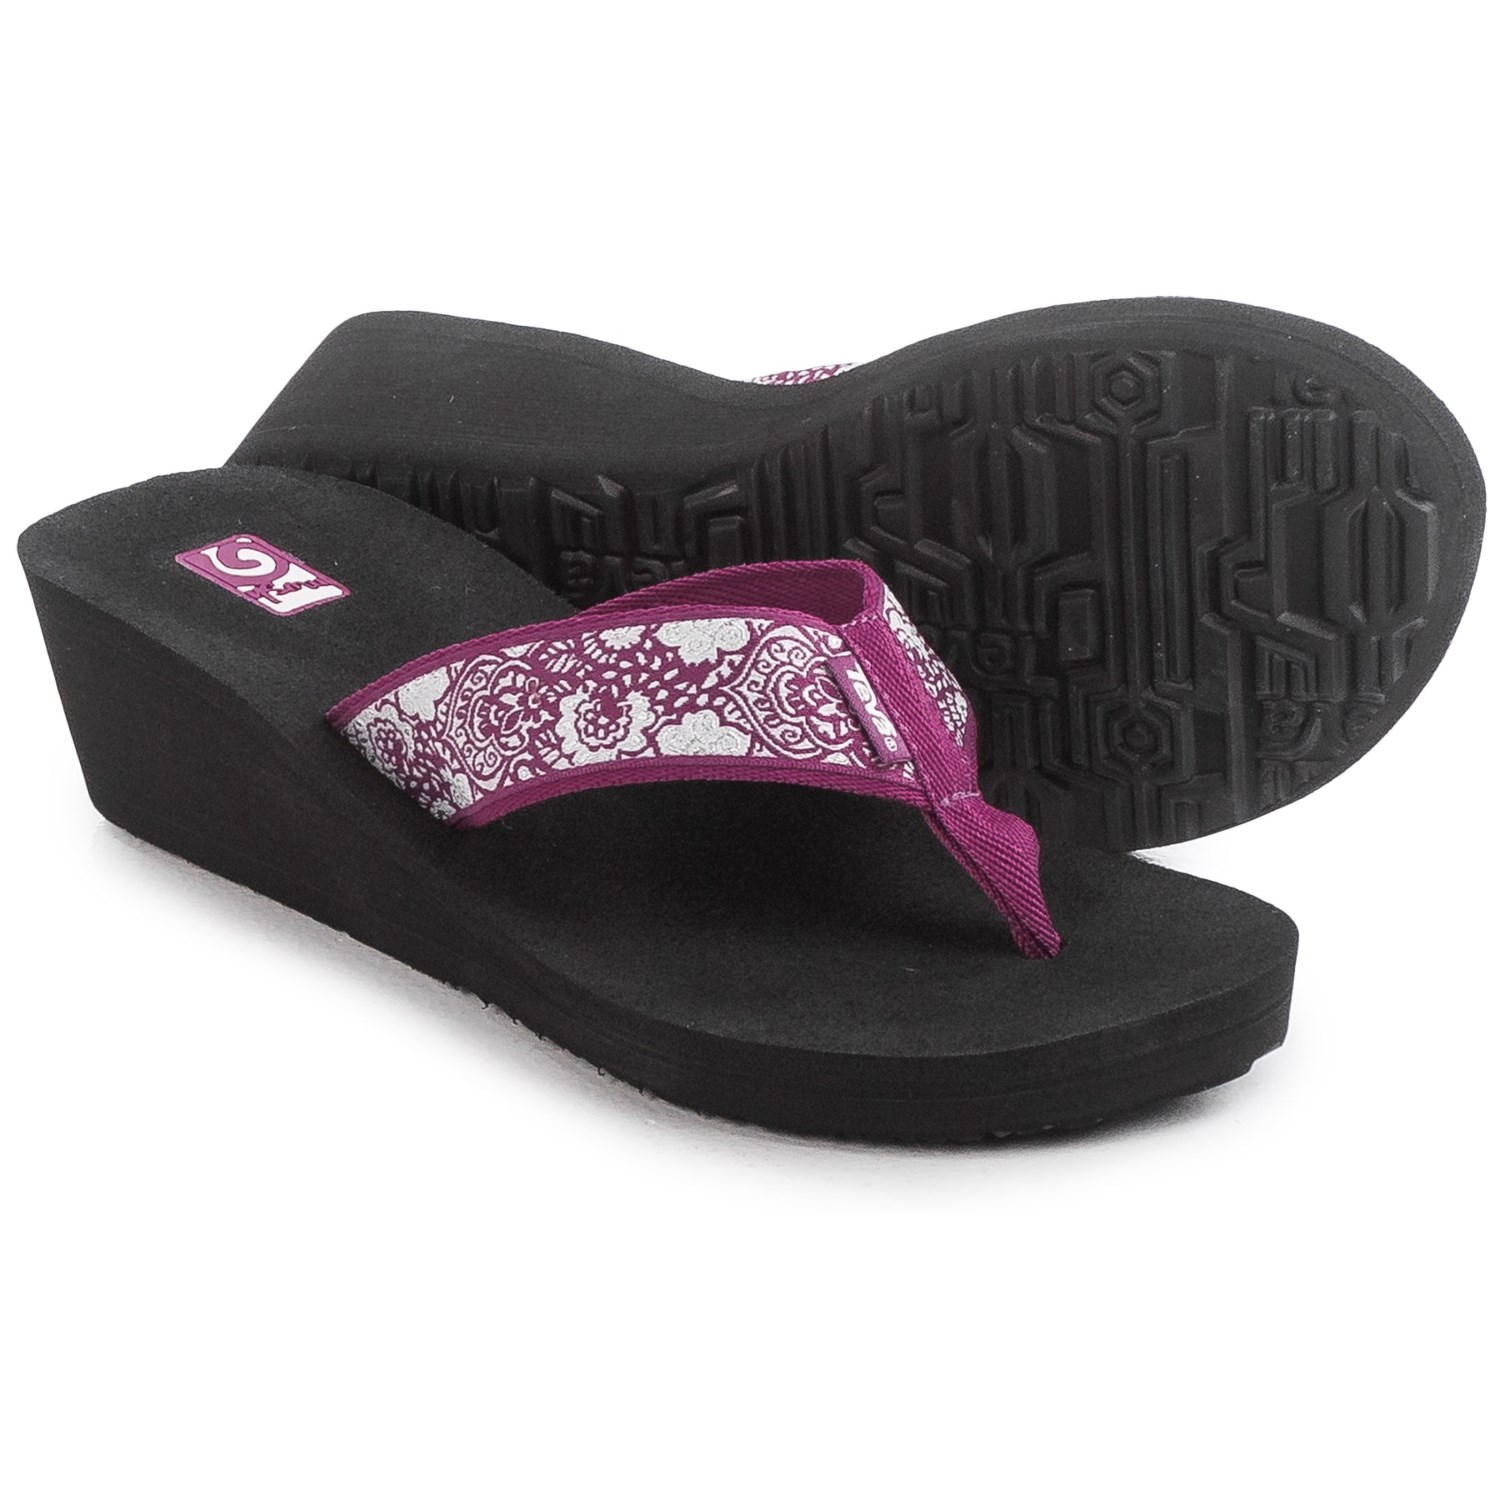 Teva Mandalyn Mush 174 Wedge 2 Sandals For Women Save 56